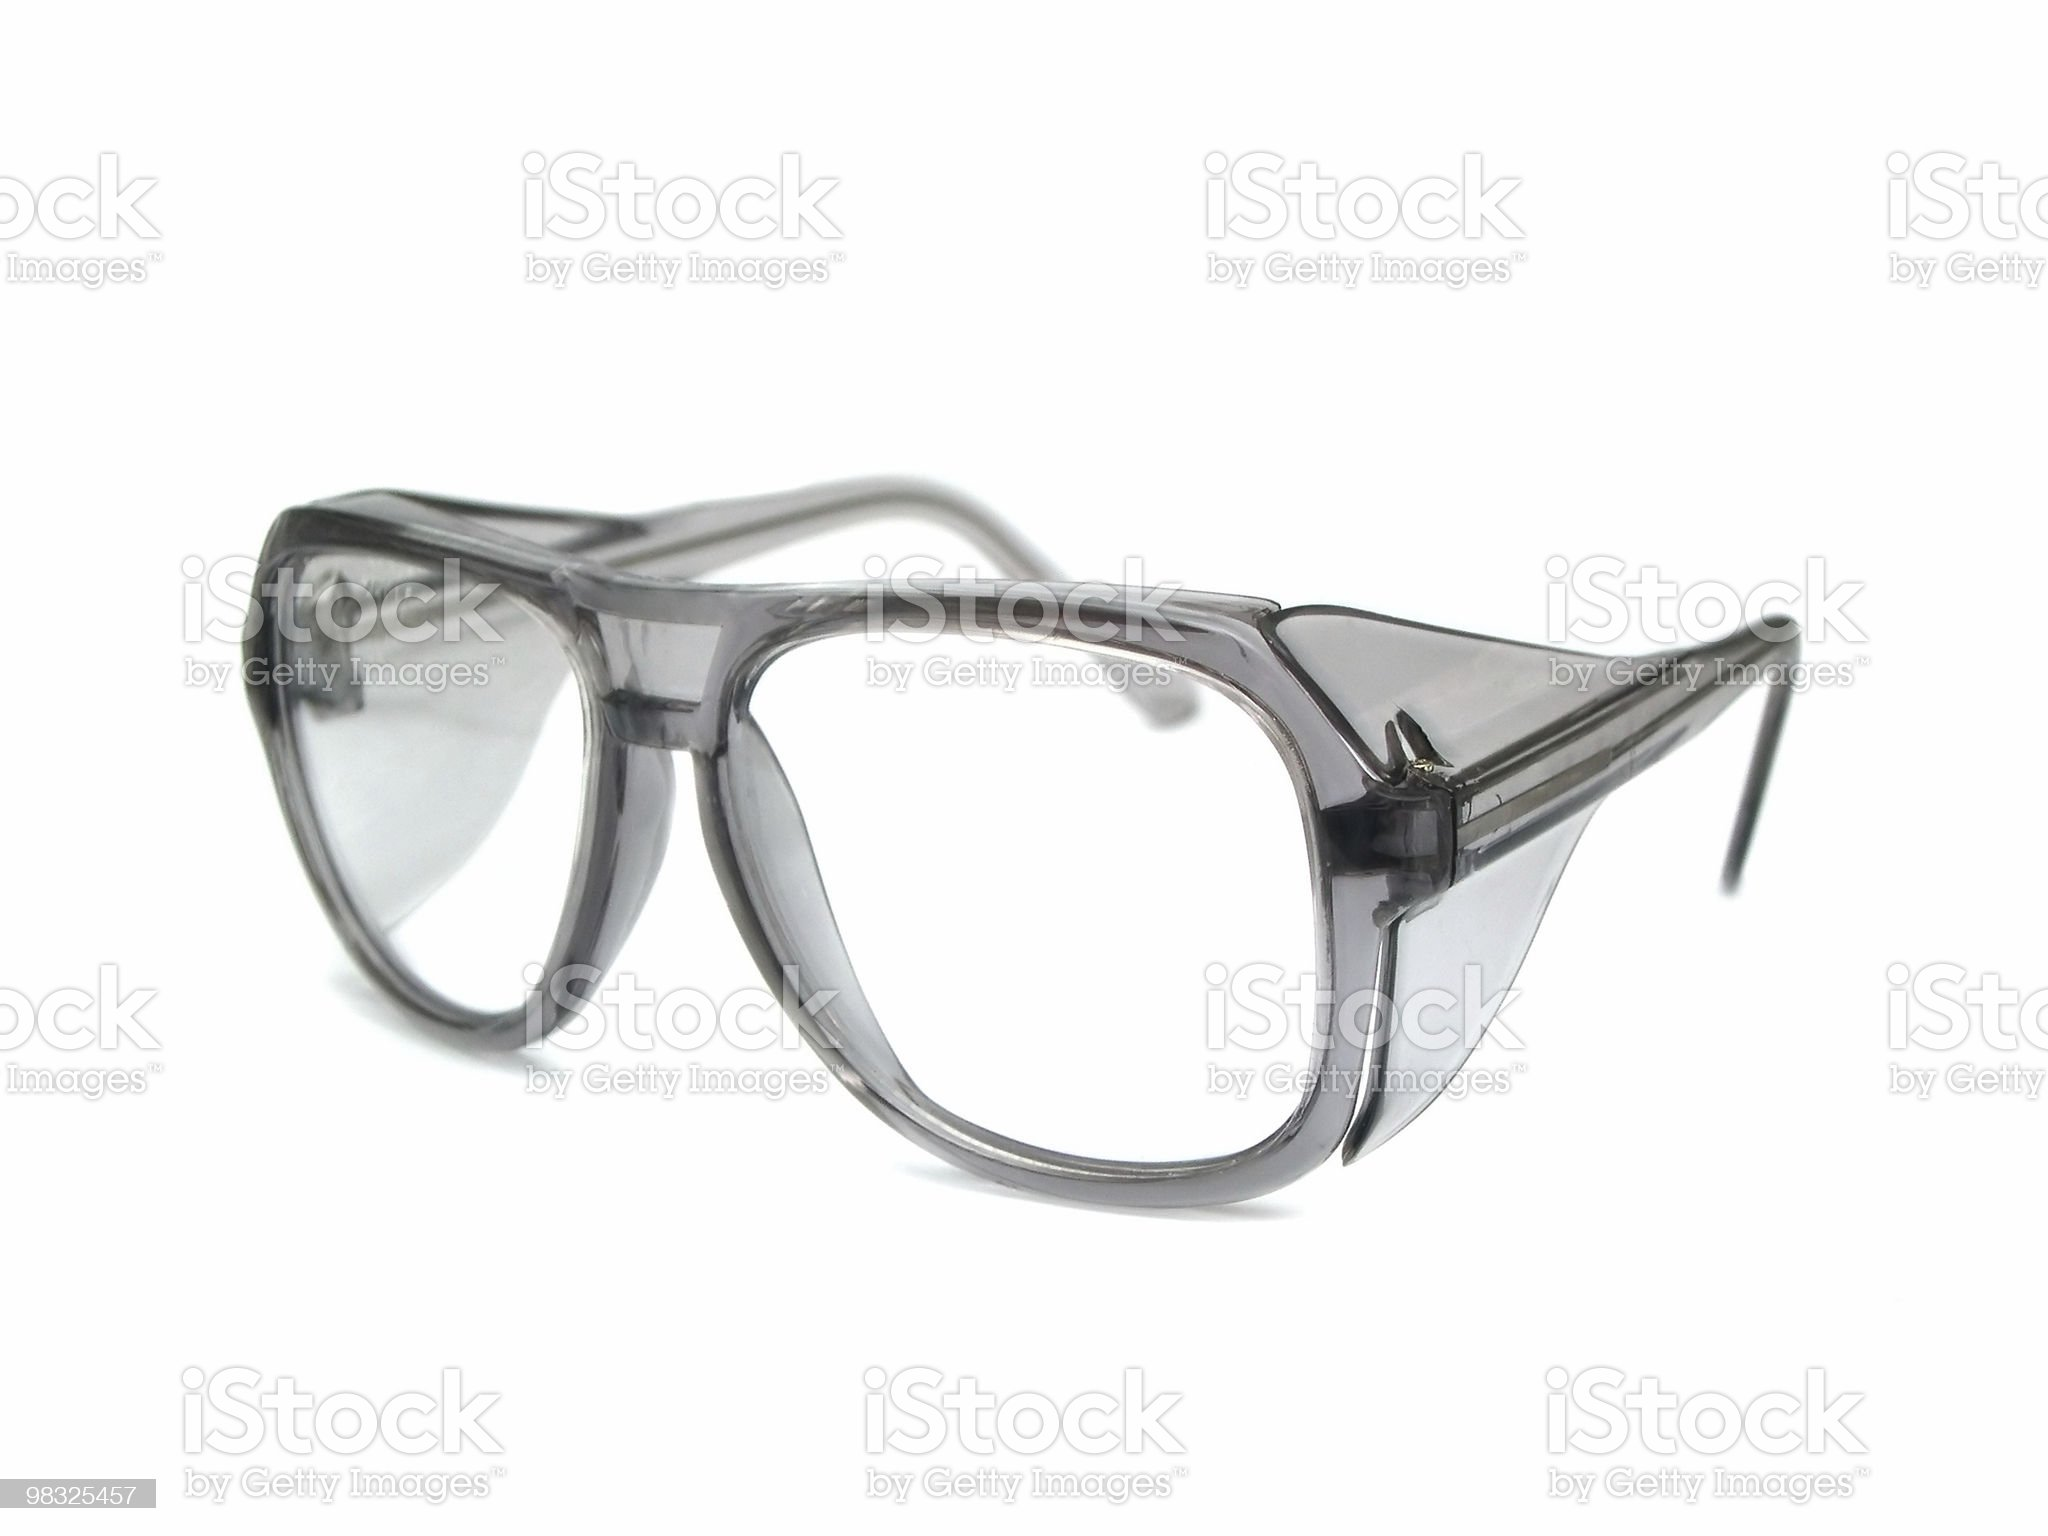 Safety goggles royalty-free stock photo